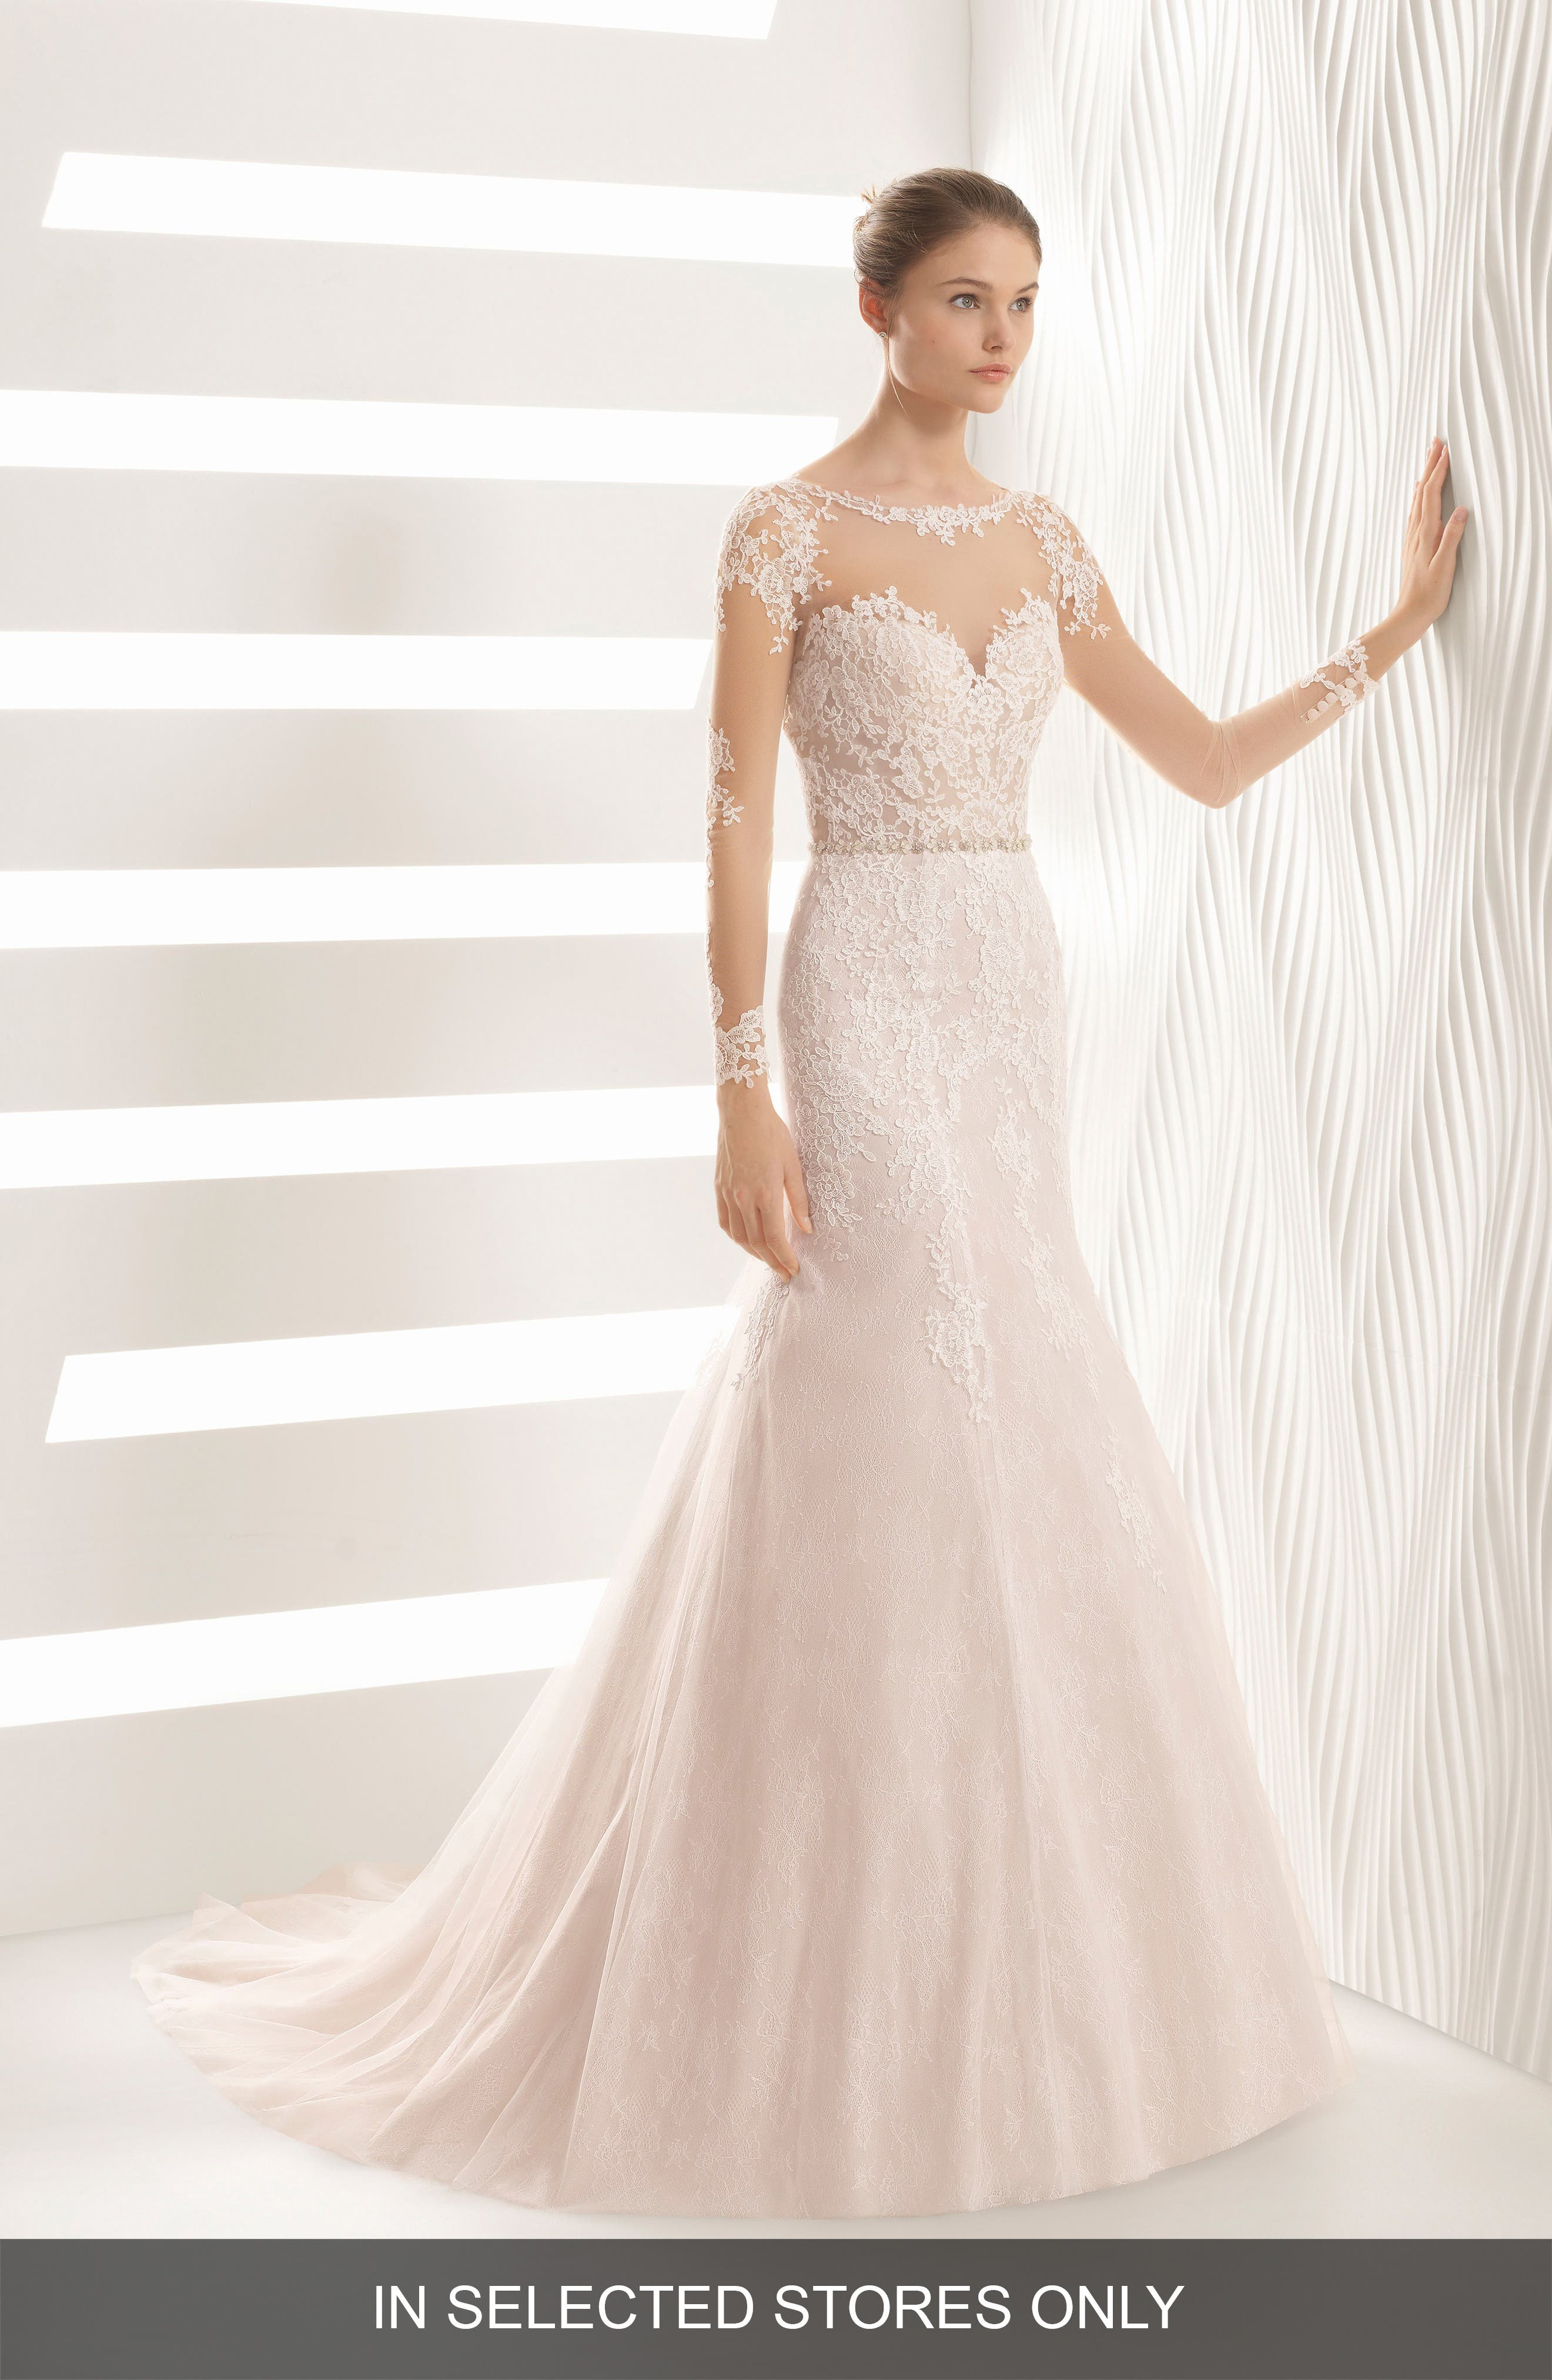 ROSA CLARÁ, Amor Embroidered Illusion Lace Trumpet Gown, Main thumbnail 1, color, NUDE